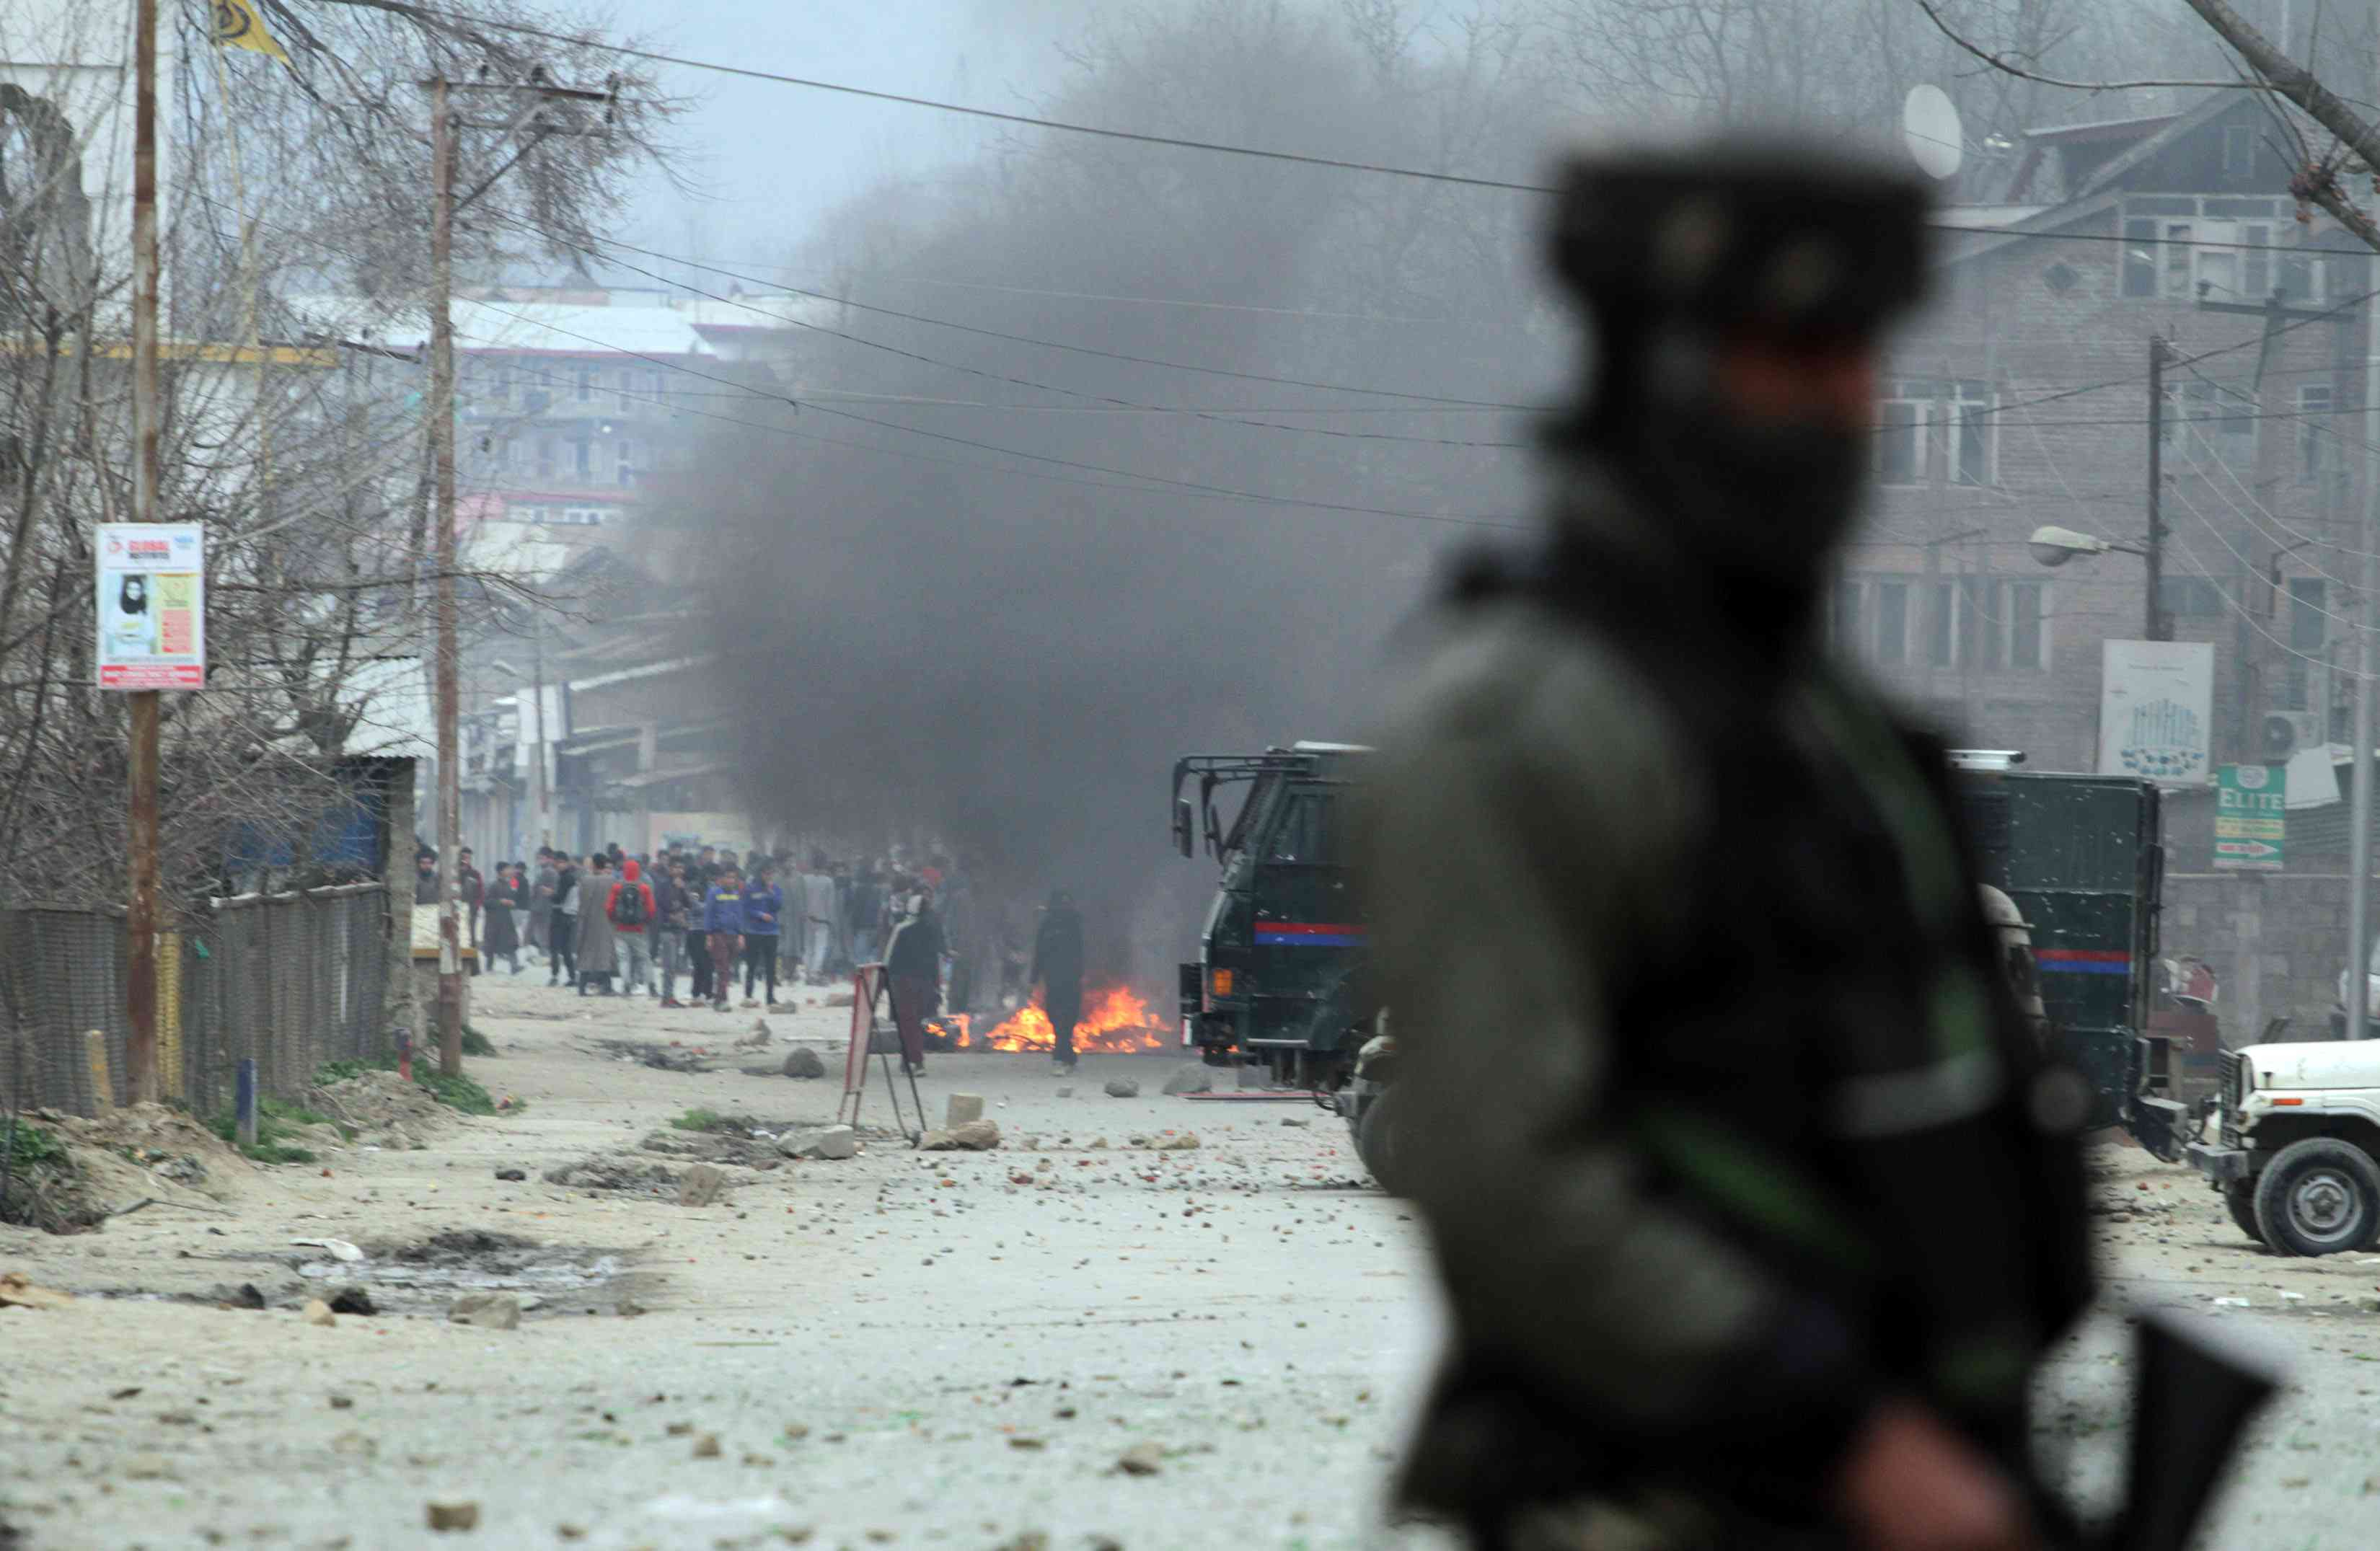 The scene outside Rizwan Pandit's house in Awantipora on Tuesday. (Photo credit: Safwat Zargar).